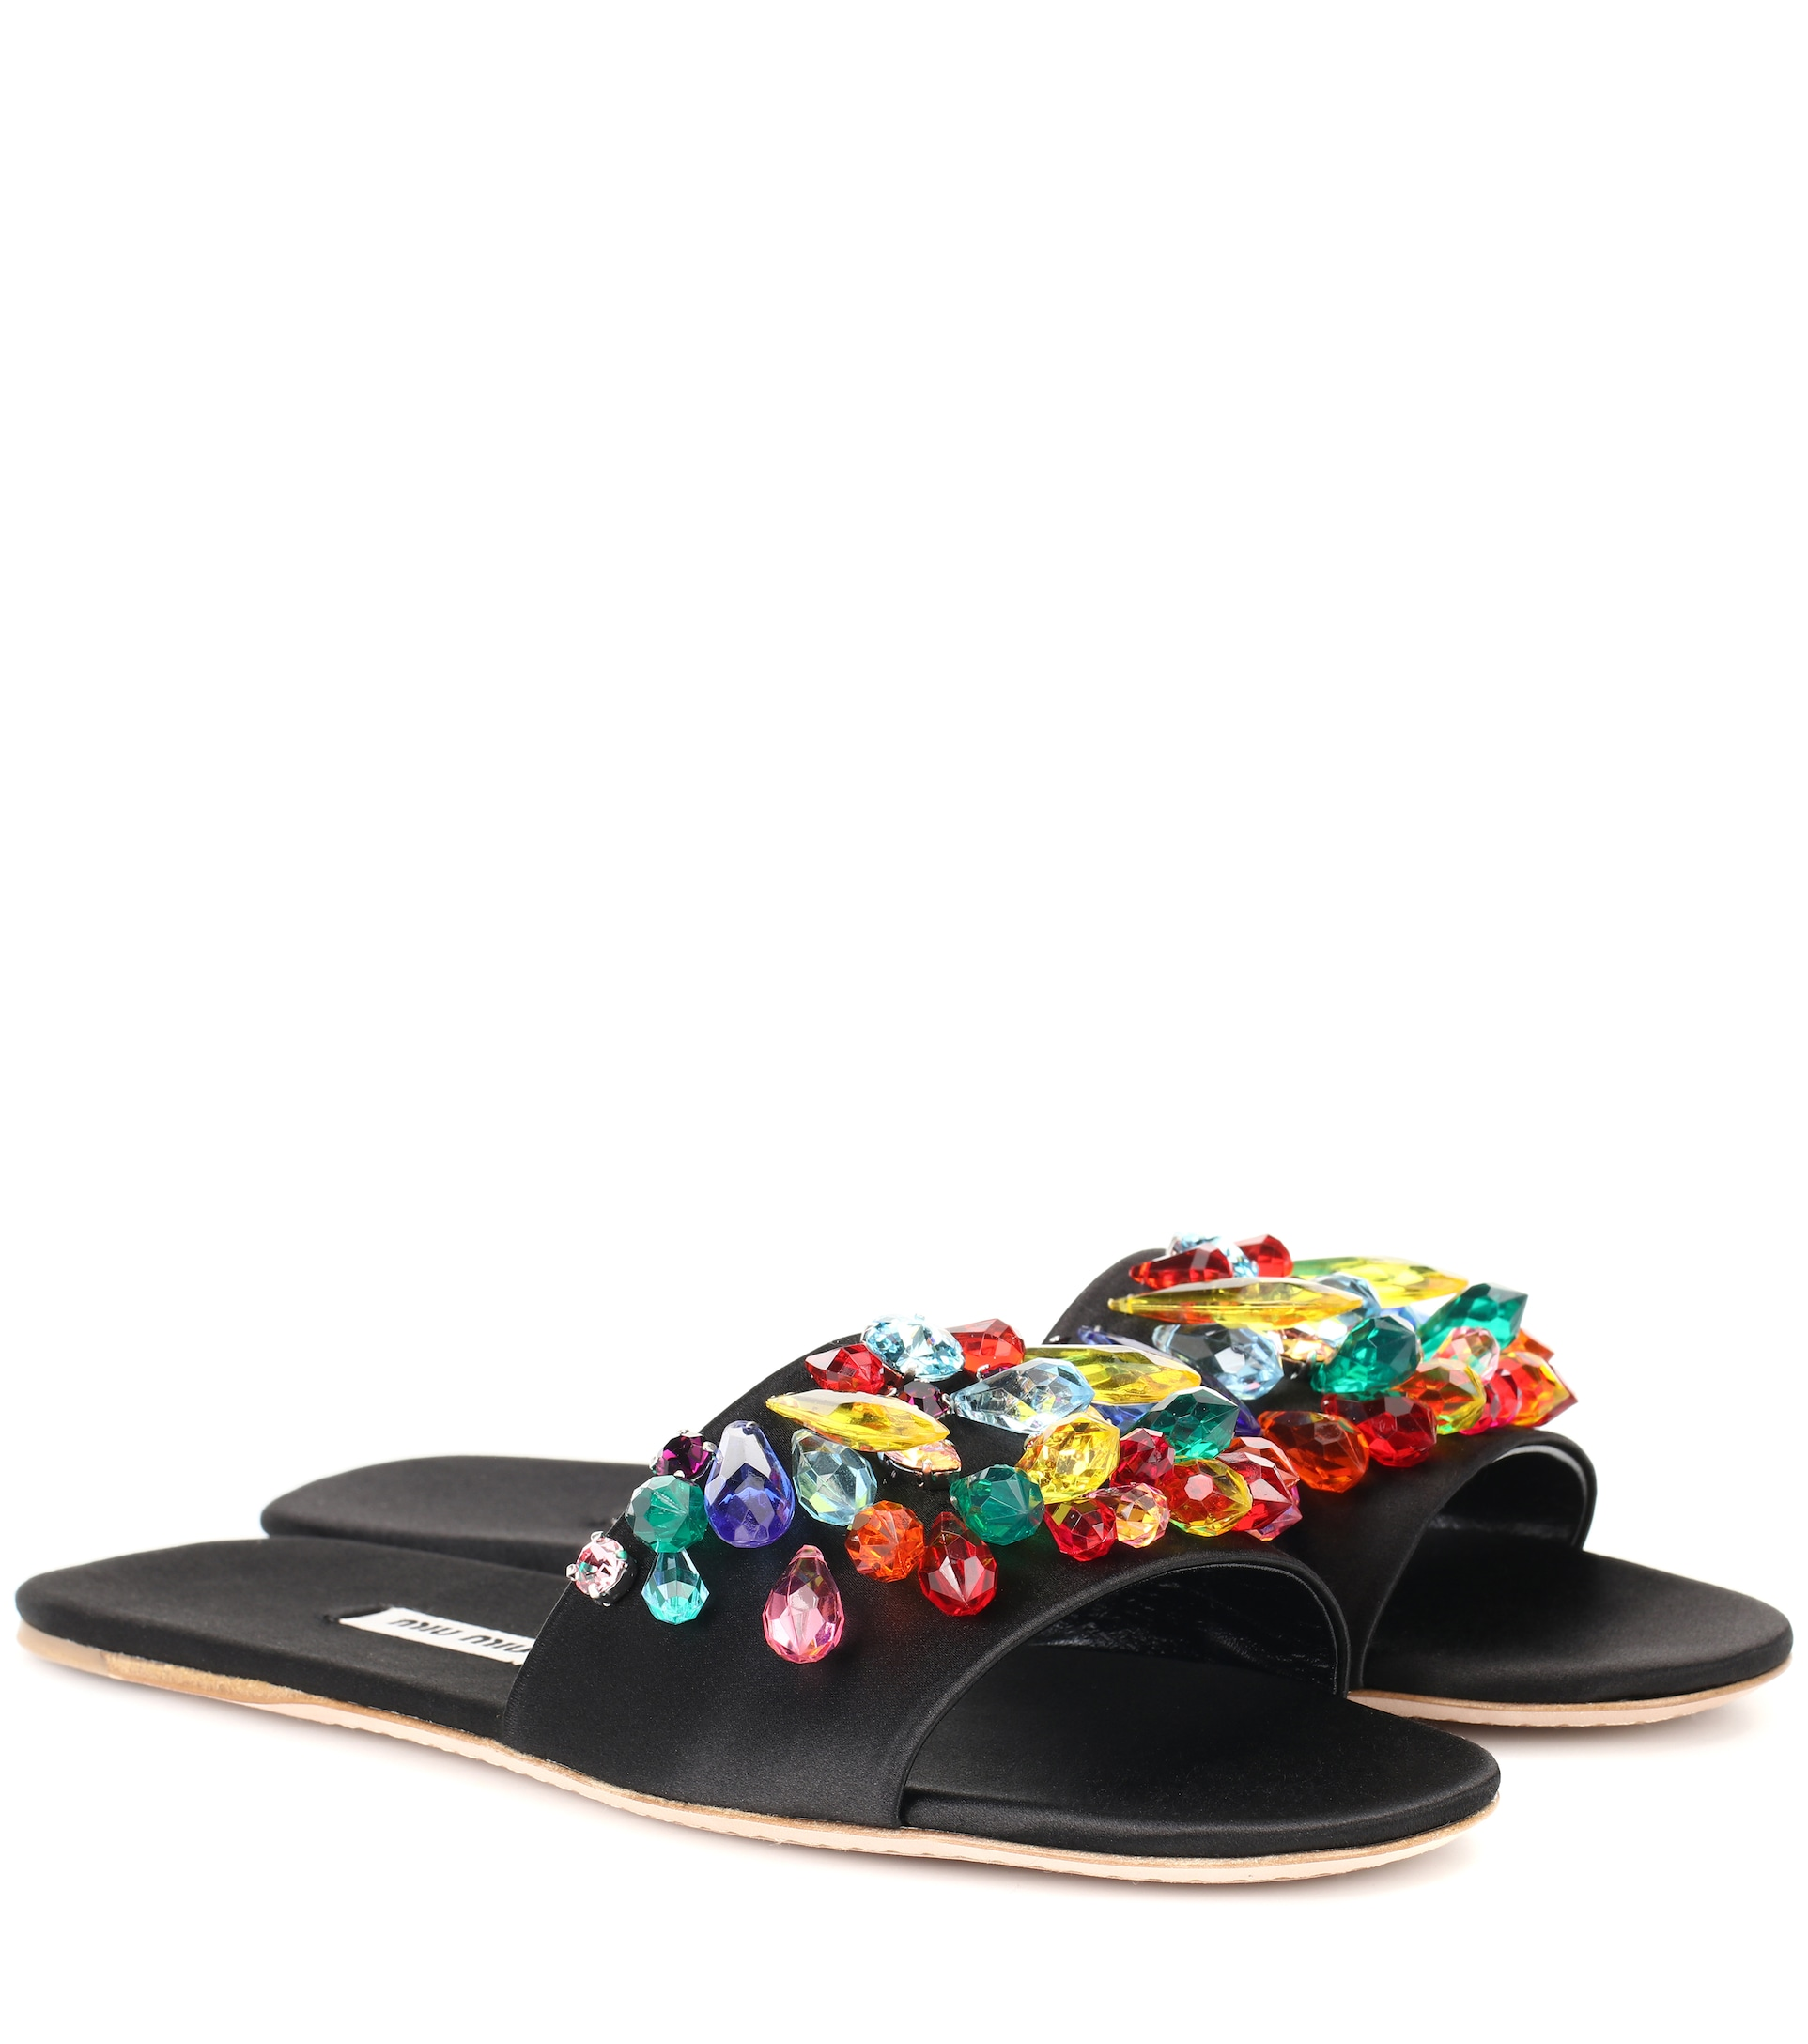 Kendall Jenner donning embellished black multicolor open toe flats with flat heel and beaded